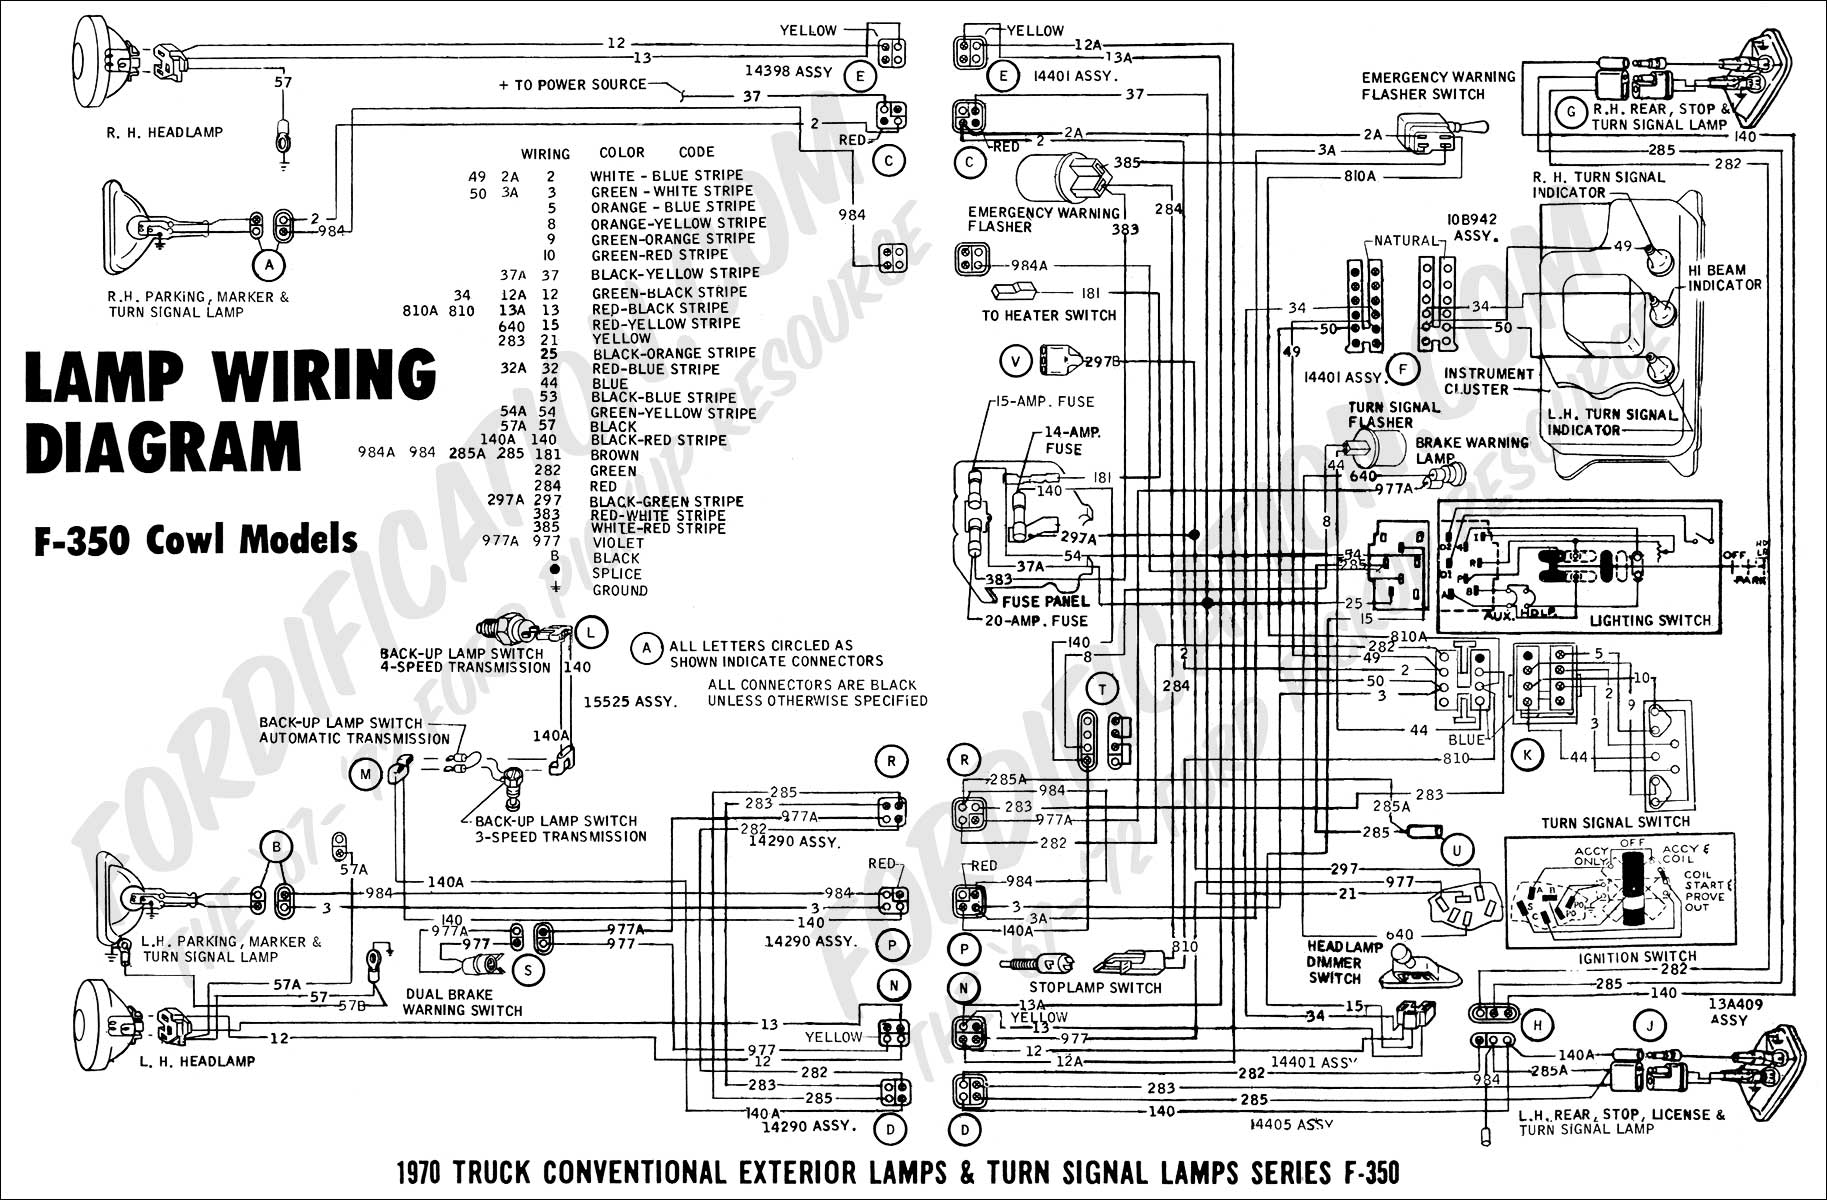 2011 f350 wiring diagram schematic diagram data